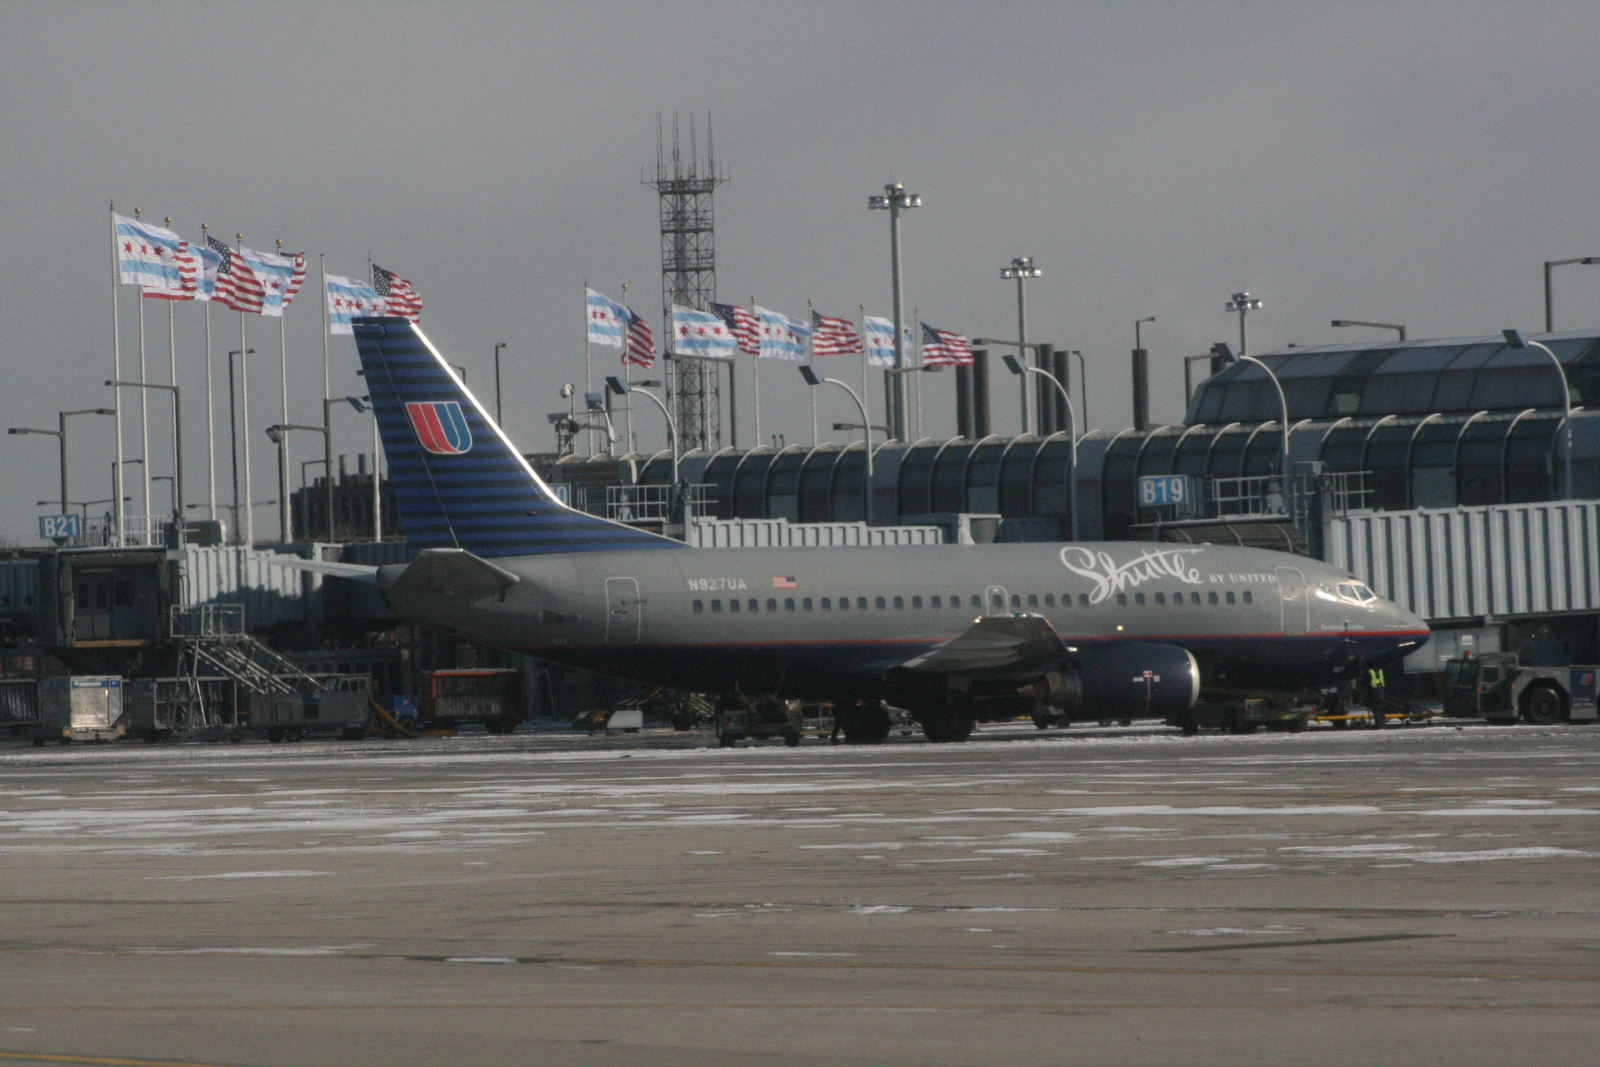 [Picture: Chicago airport: United aeroplane]